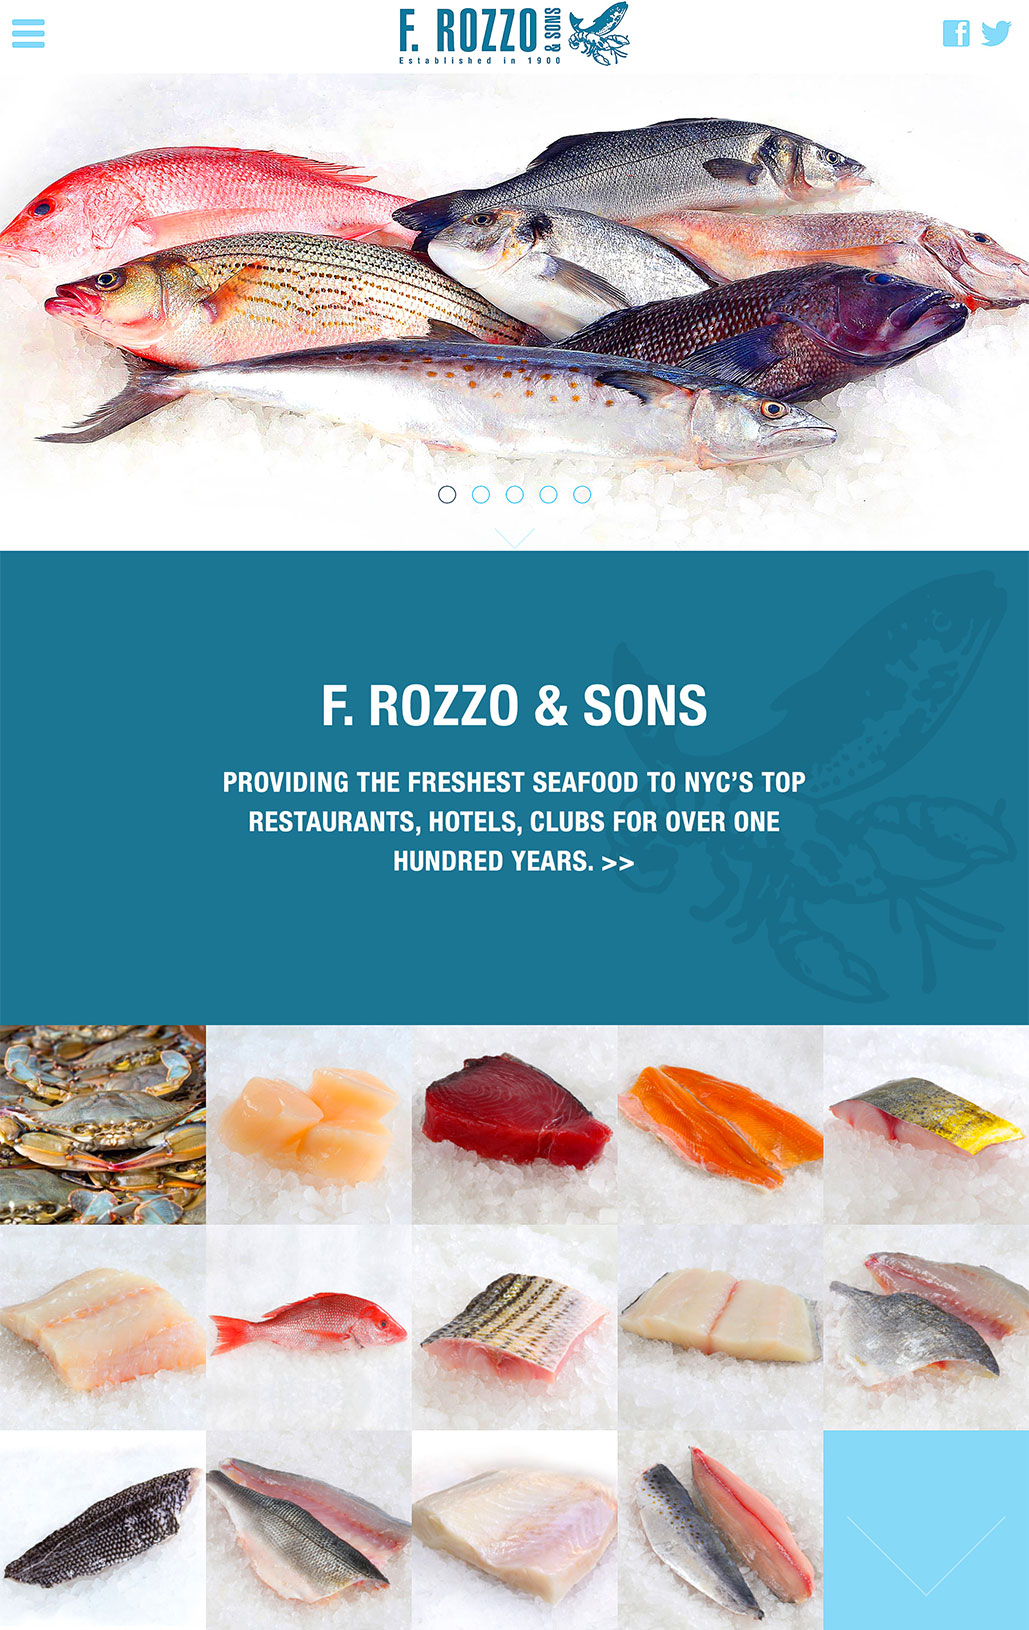 F. Rozzo and Sons